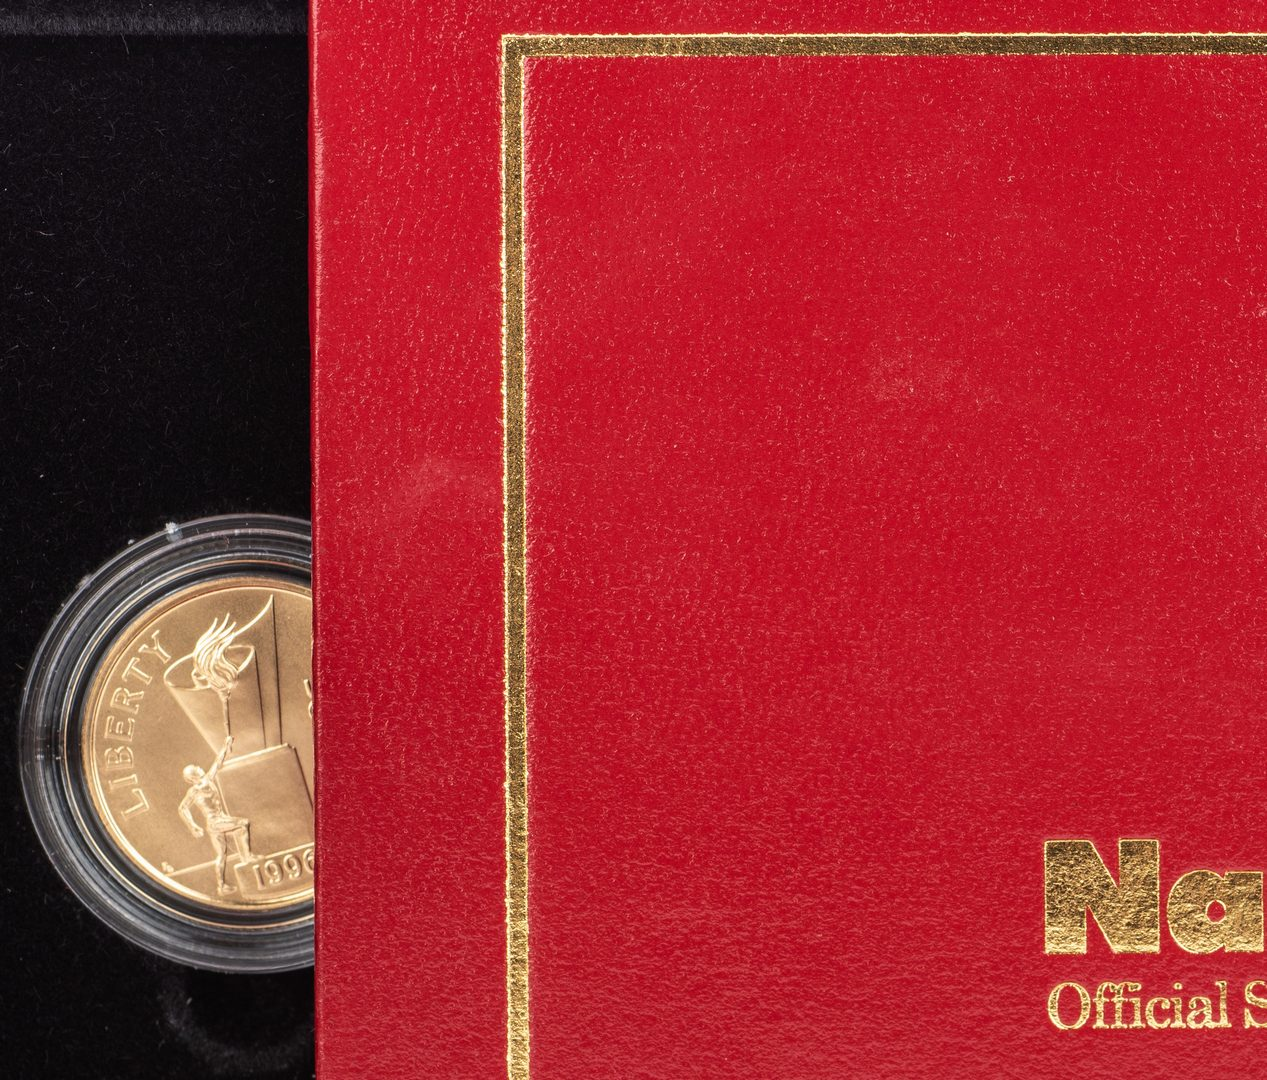 Lot 761: 4 Boxed 1996 Olympic $5 Gold Coins